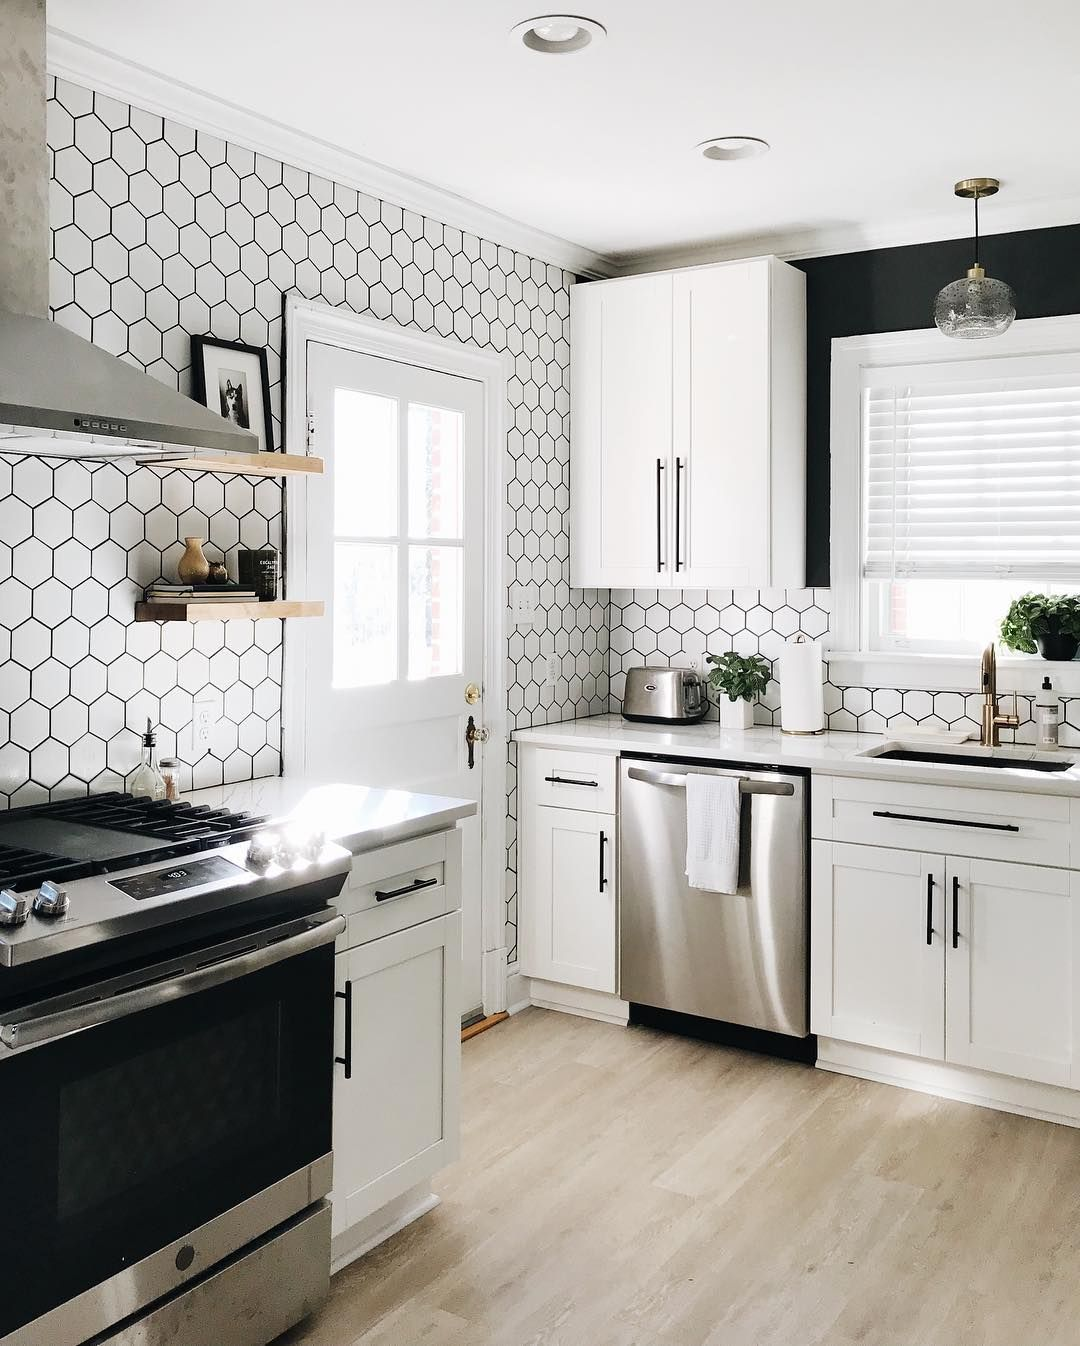 Swipe To See The Before Richmond Photographer Kenzi Flinchum S Kitchen Underwent A Truly Amazing T With Images Cabinets To Go White Shaker Cabinets Kitchen Cabinet Styles